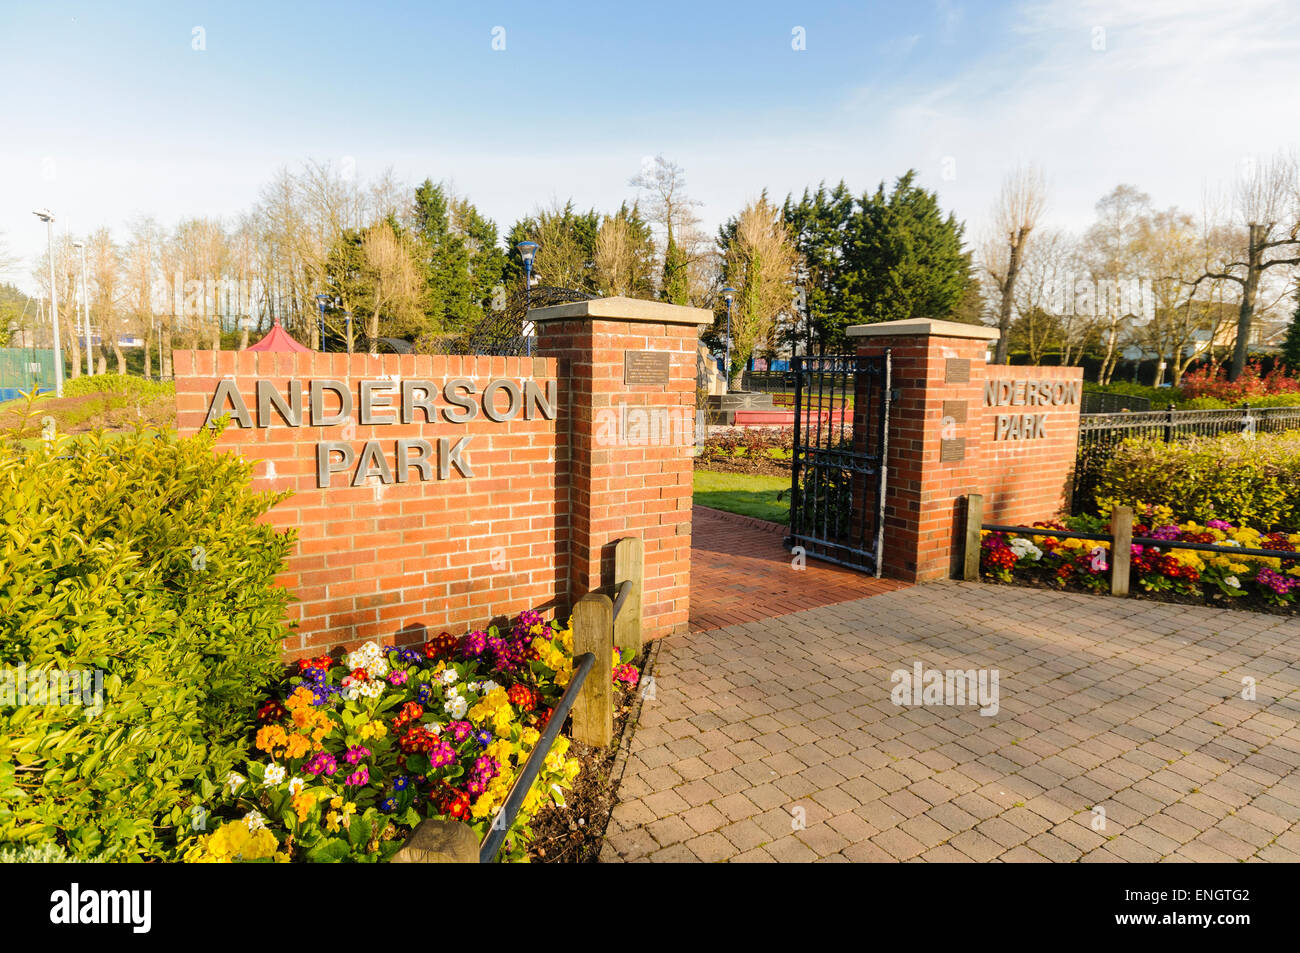 Anderson Park, Coleraine, Northern Ireland - Stock Image